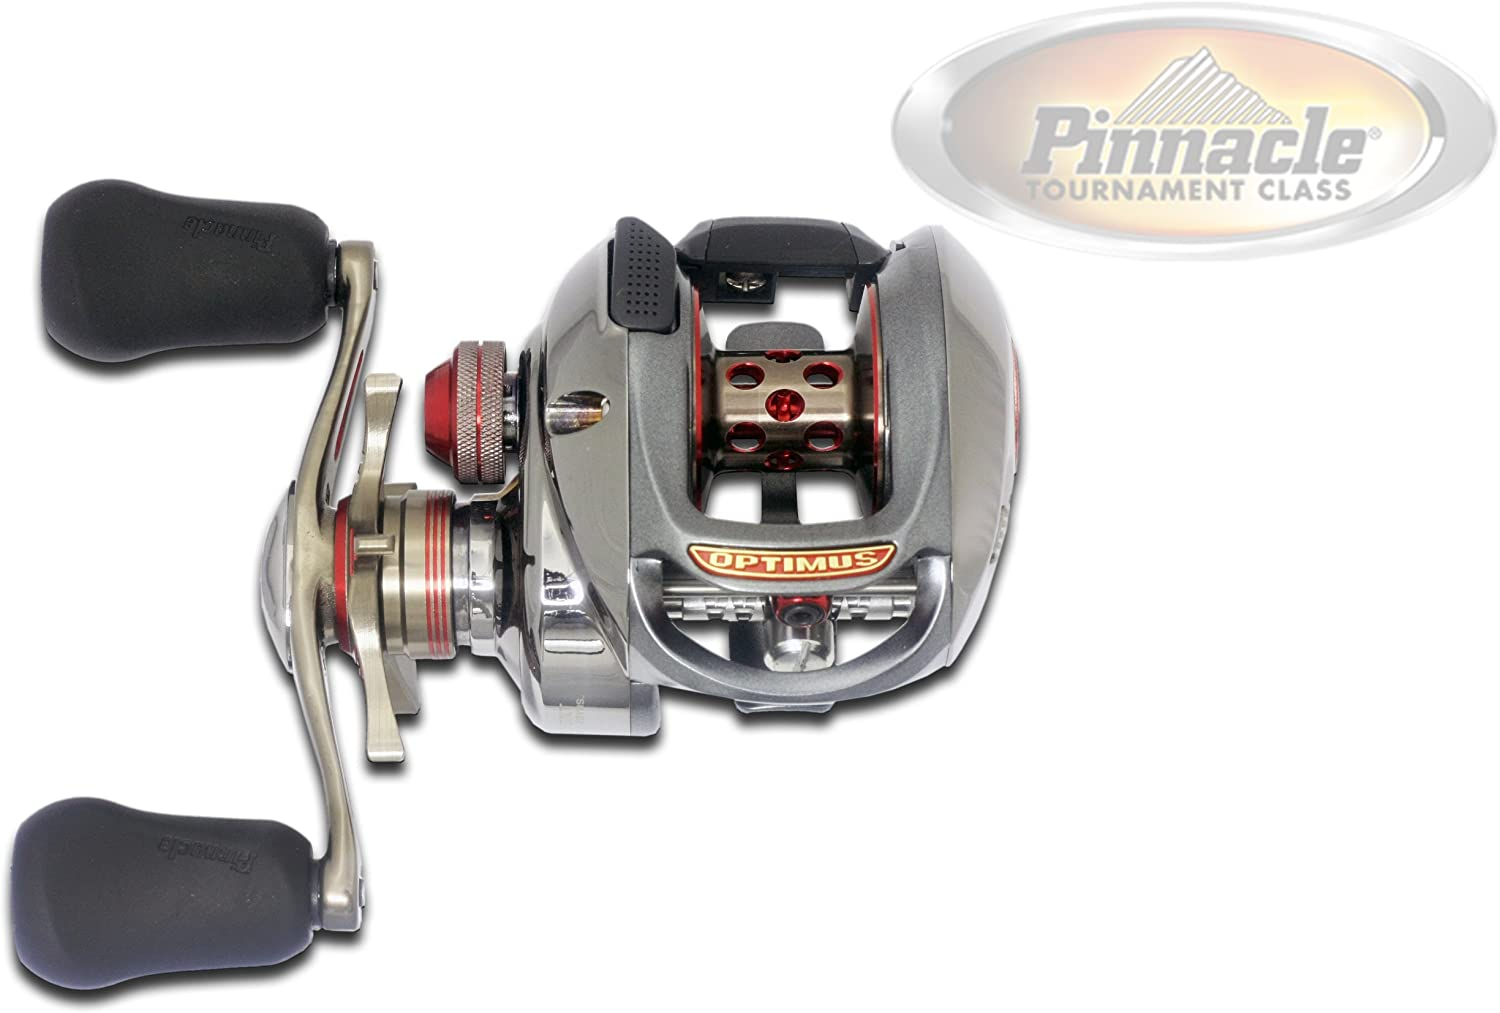 Pinnacle Optimus XT Baitcast Reel,  4.7 1